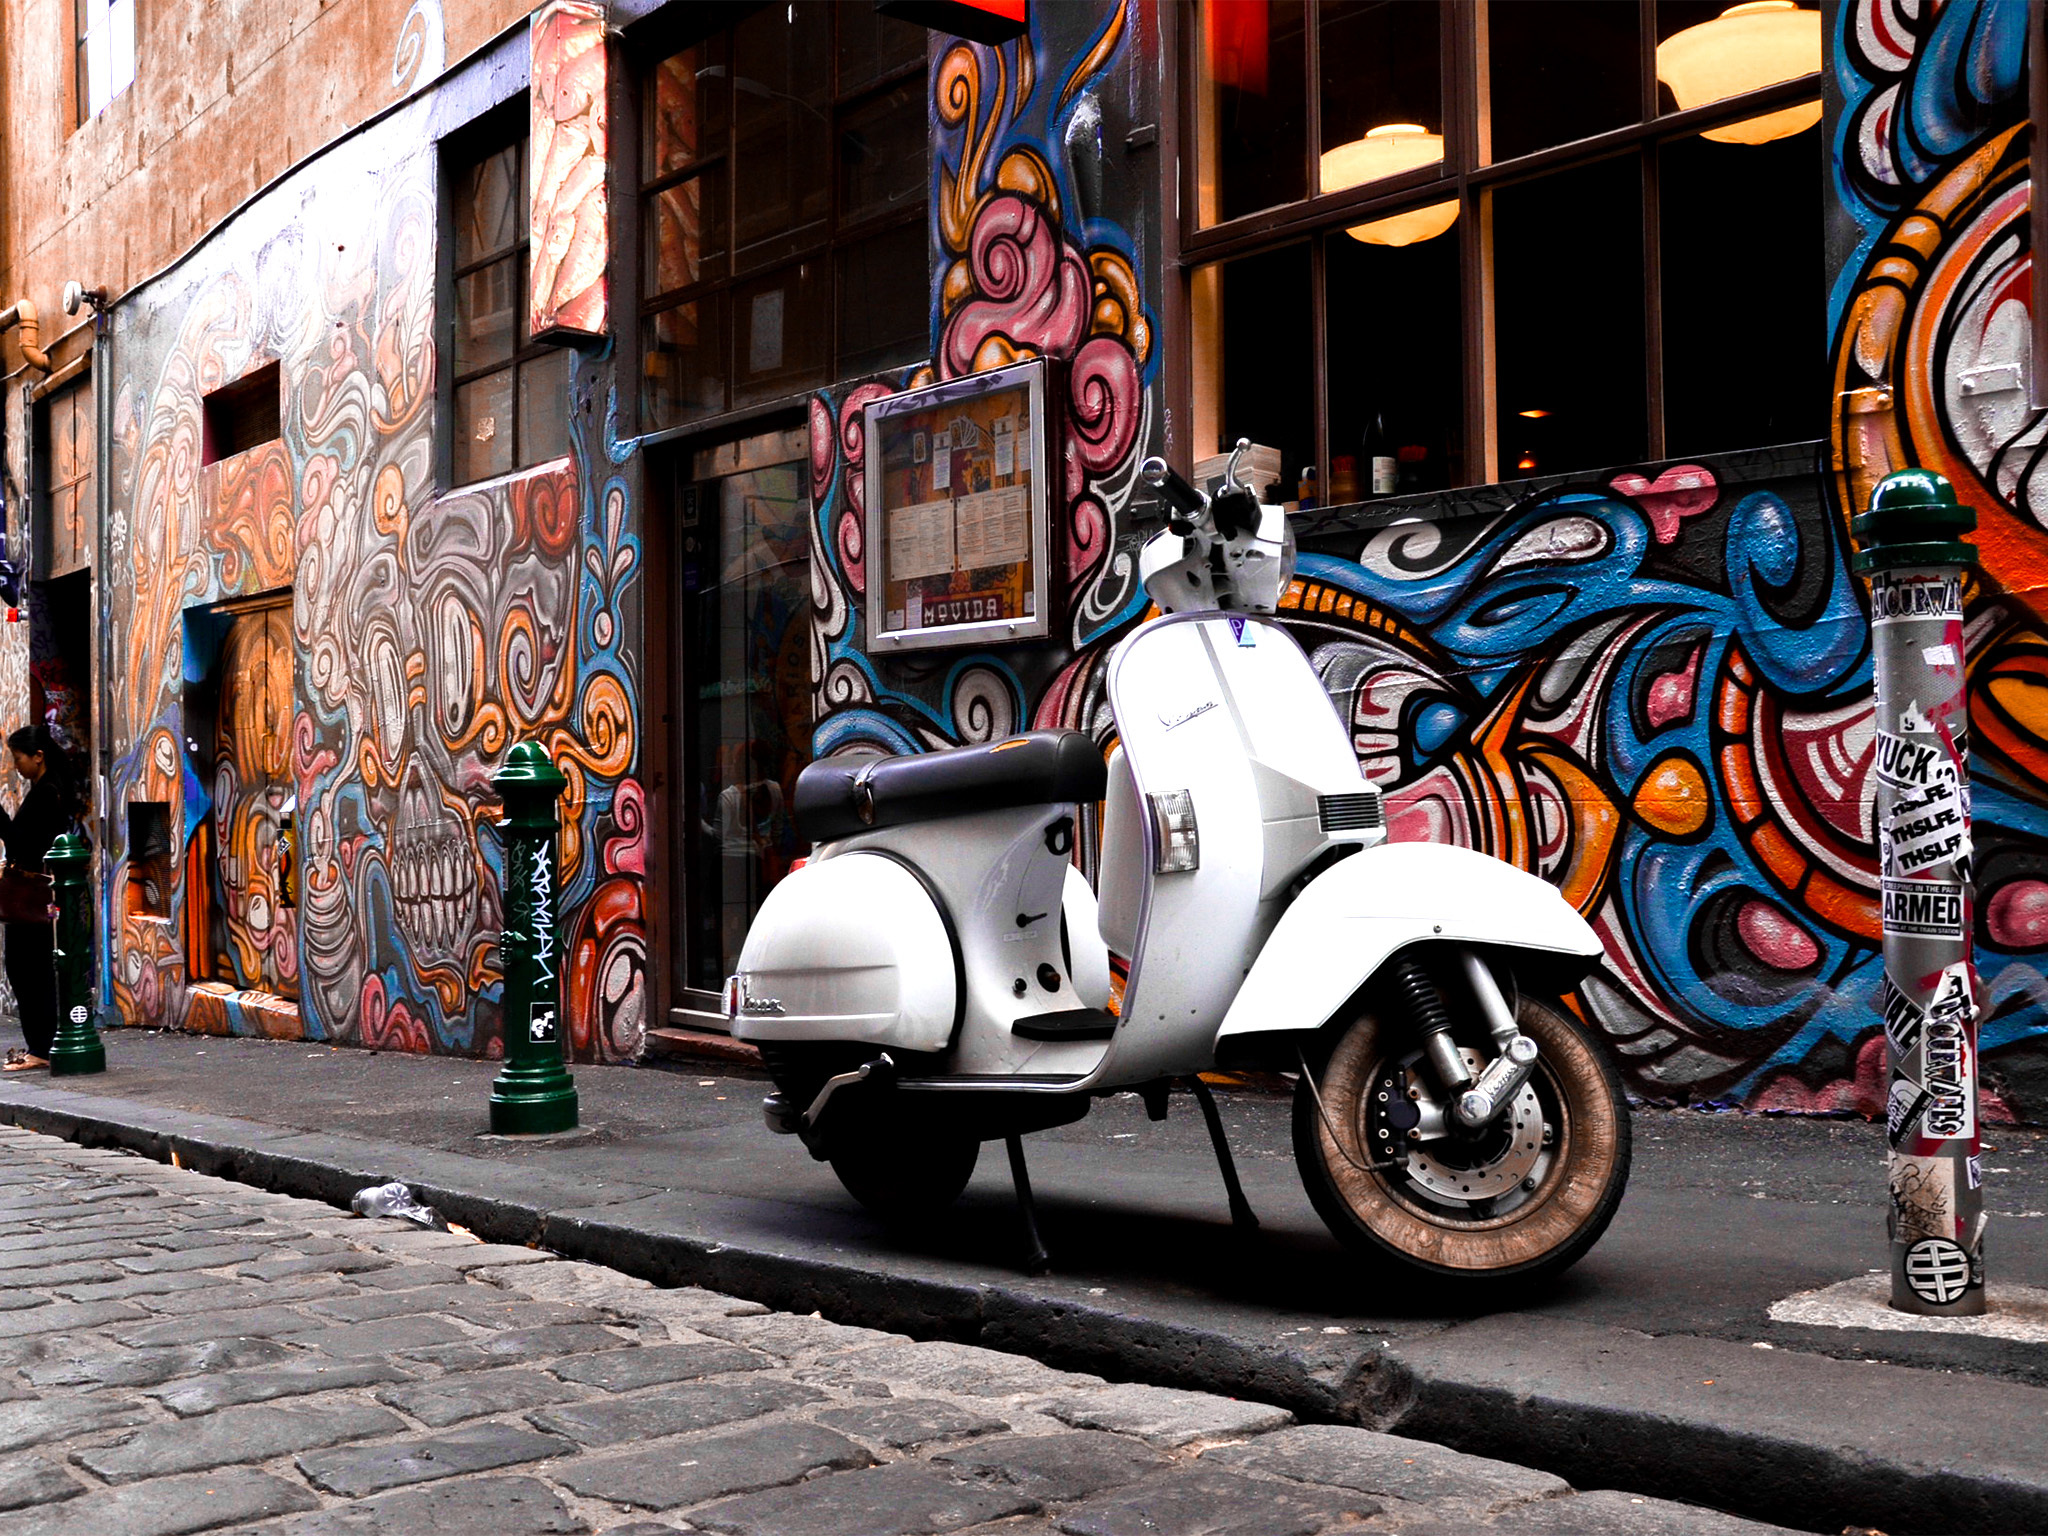 Vespa infront of street art in Hosier Lane